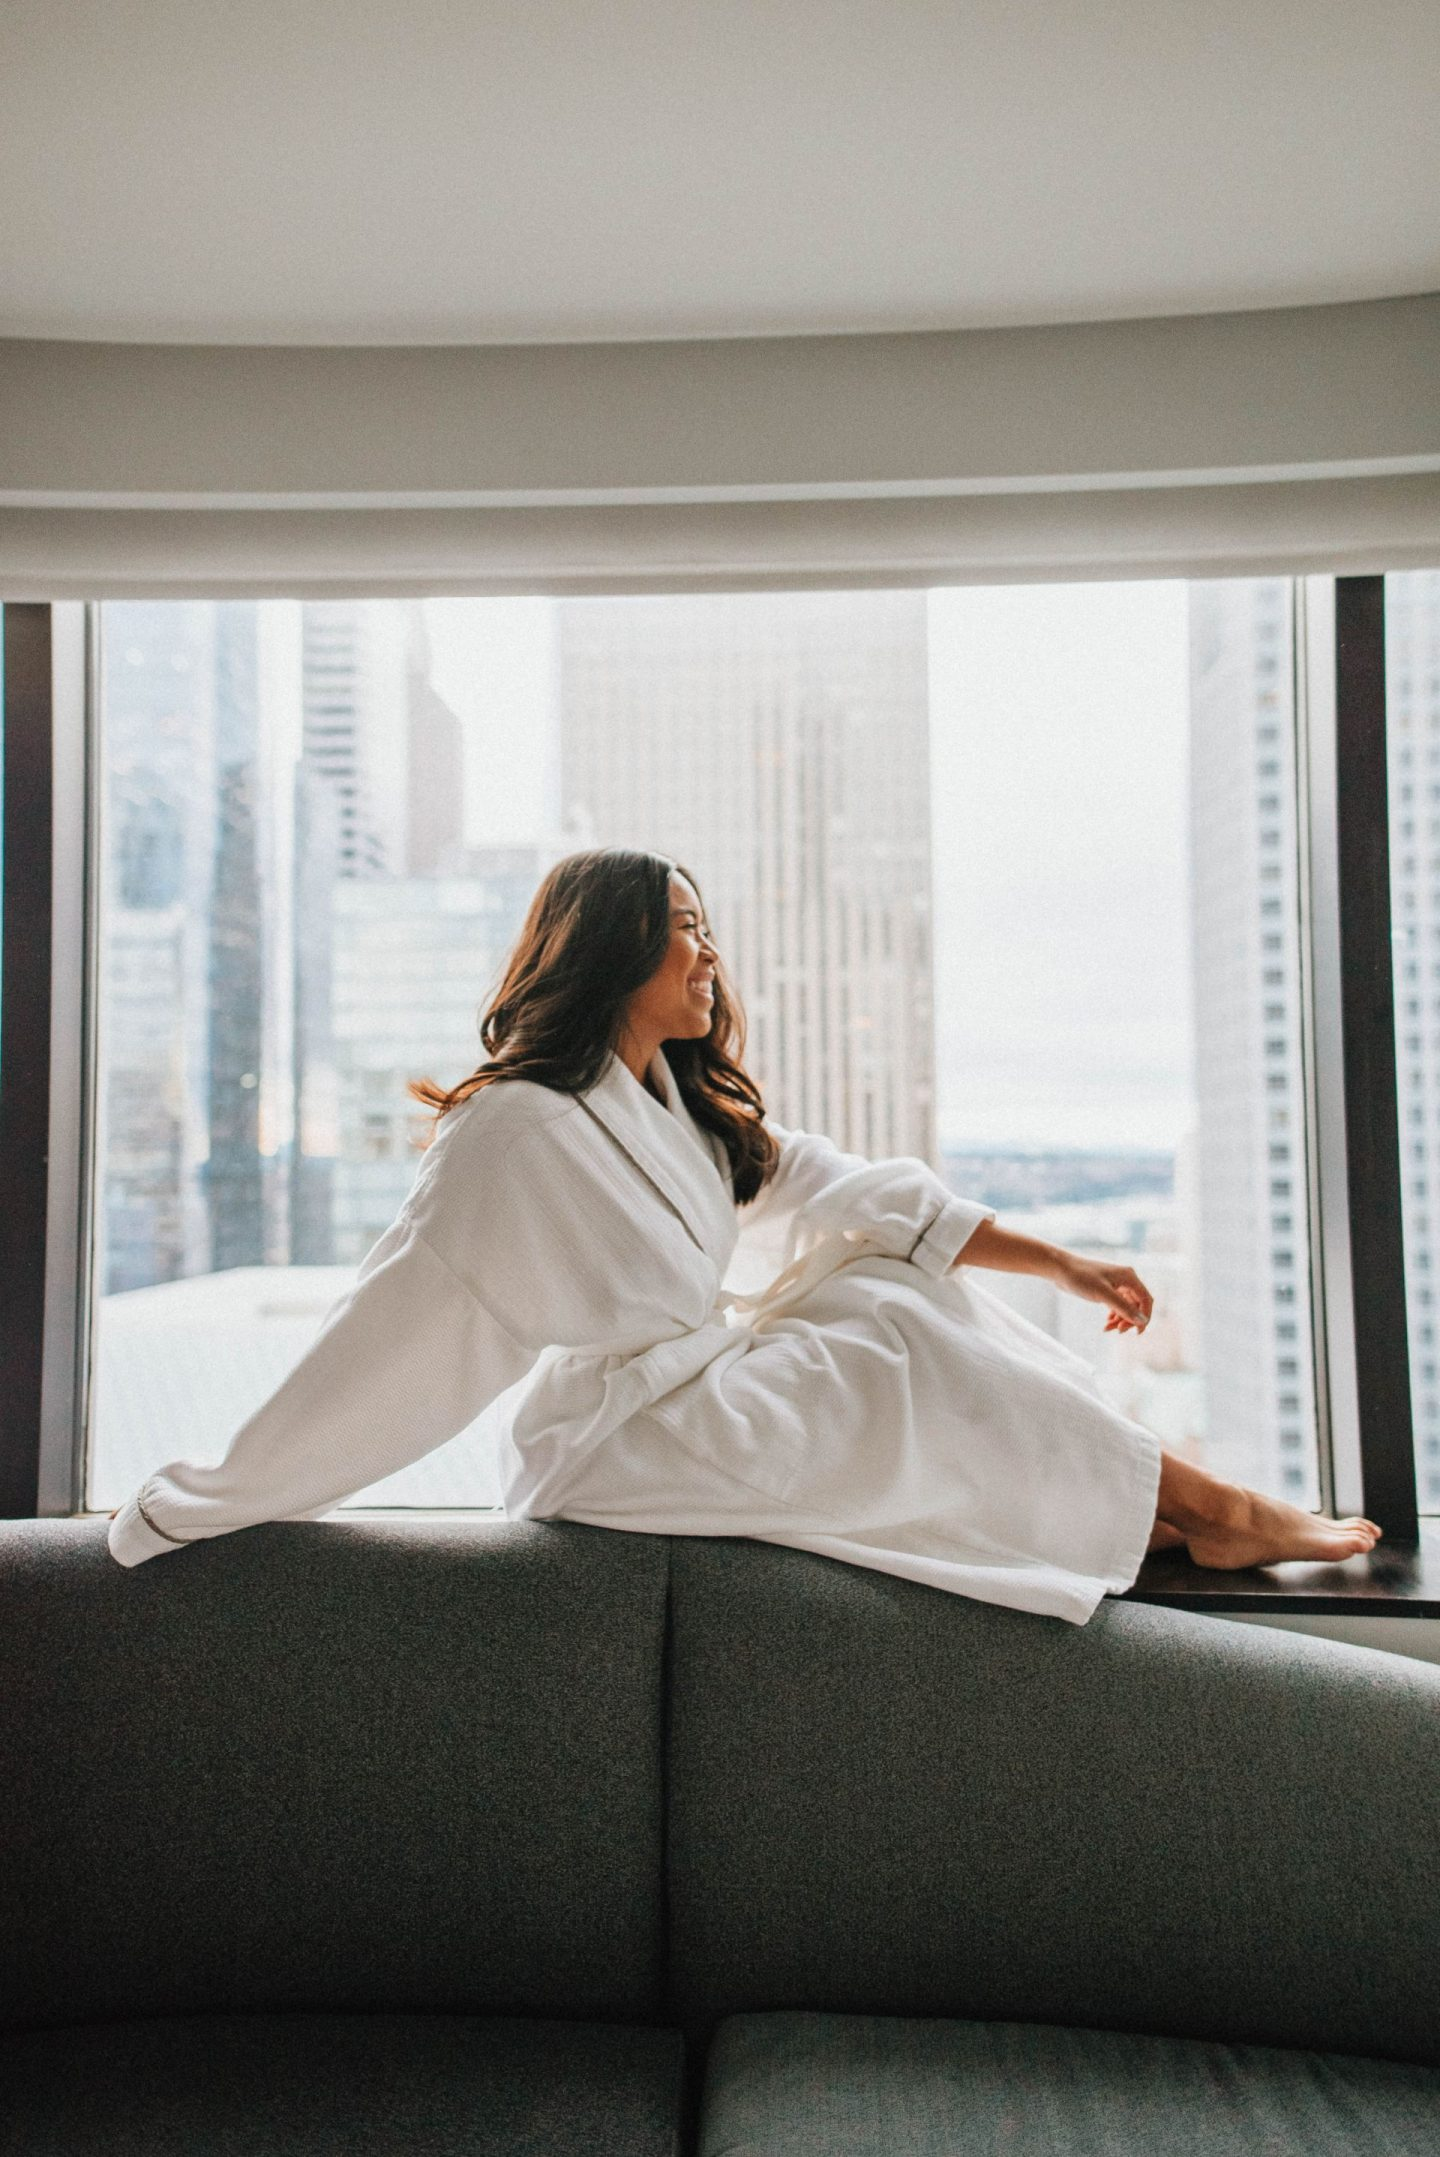 Brunch in bed - Emma's Edition - hotel photo ideas - hotel photo shoot